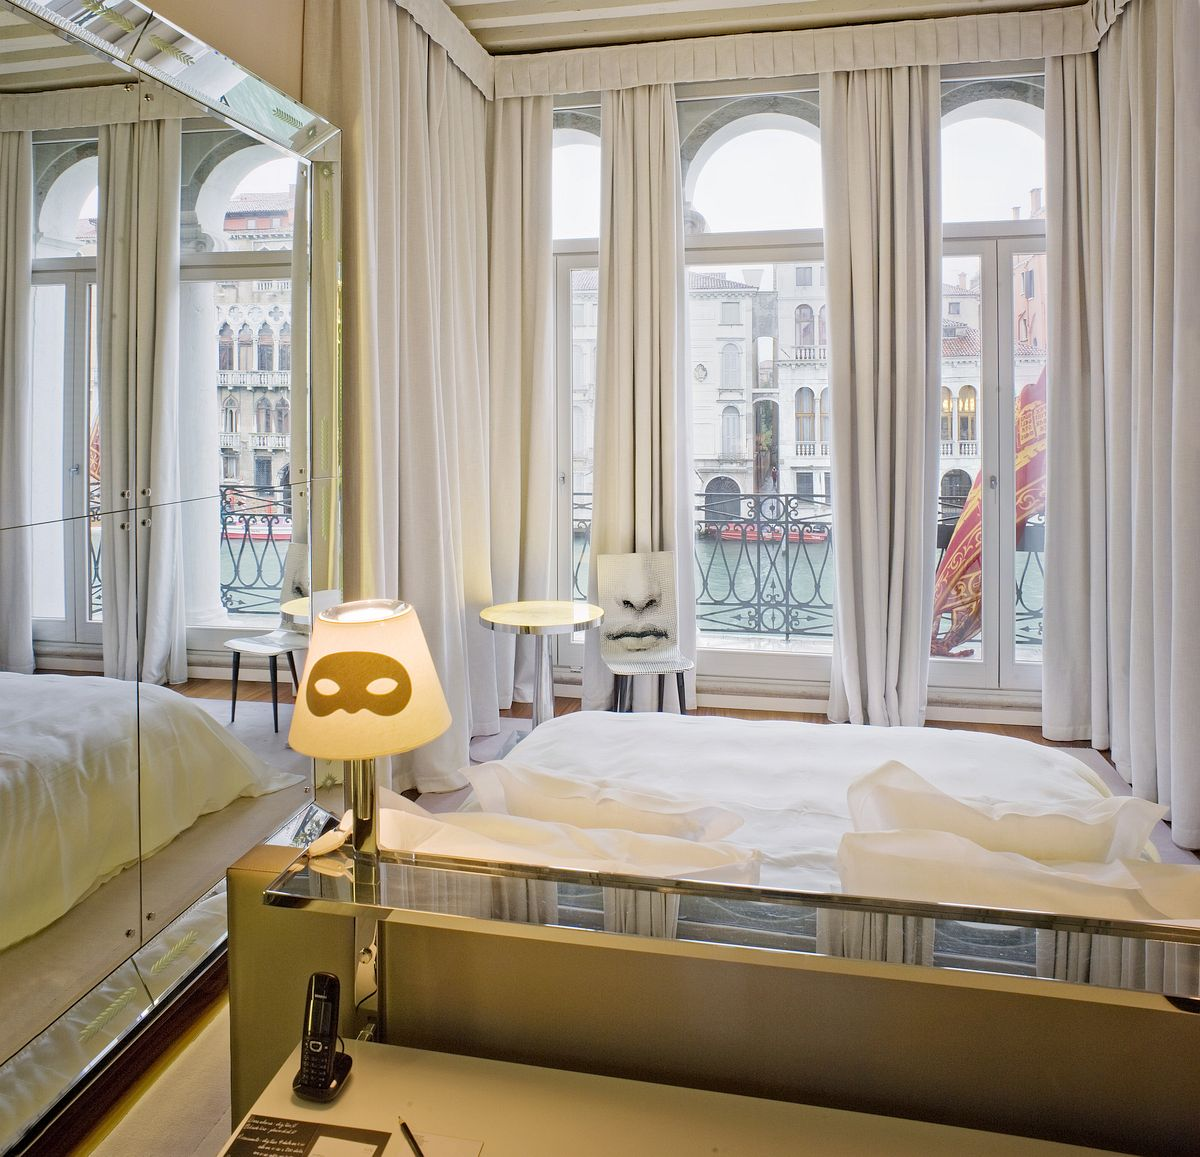 dream bedroom Dream bedrooms from all around the world Pt II Palazzina G grand canal bedroom philippe starck splendid bedroom luxury textiles venetian ssymbols gracious refined atmosphere soothe relax